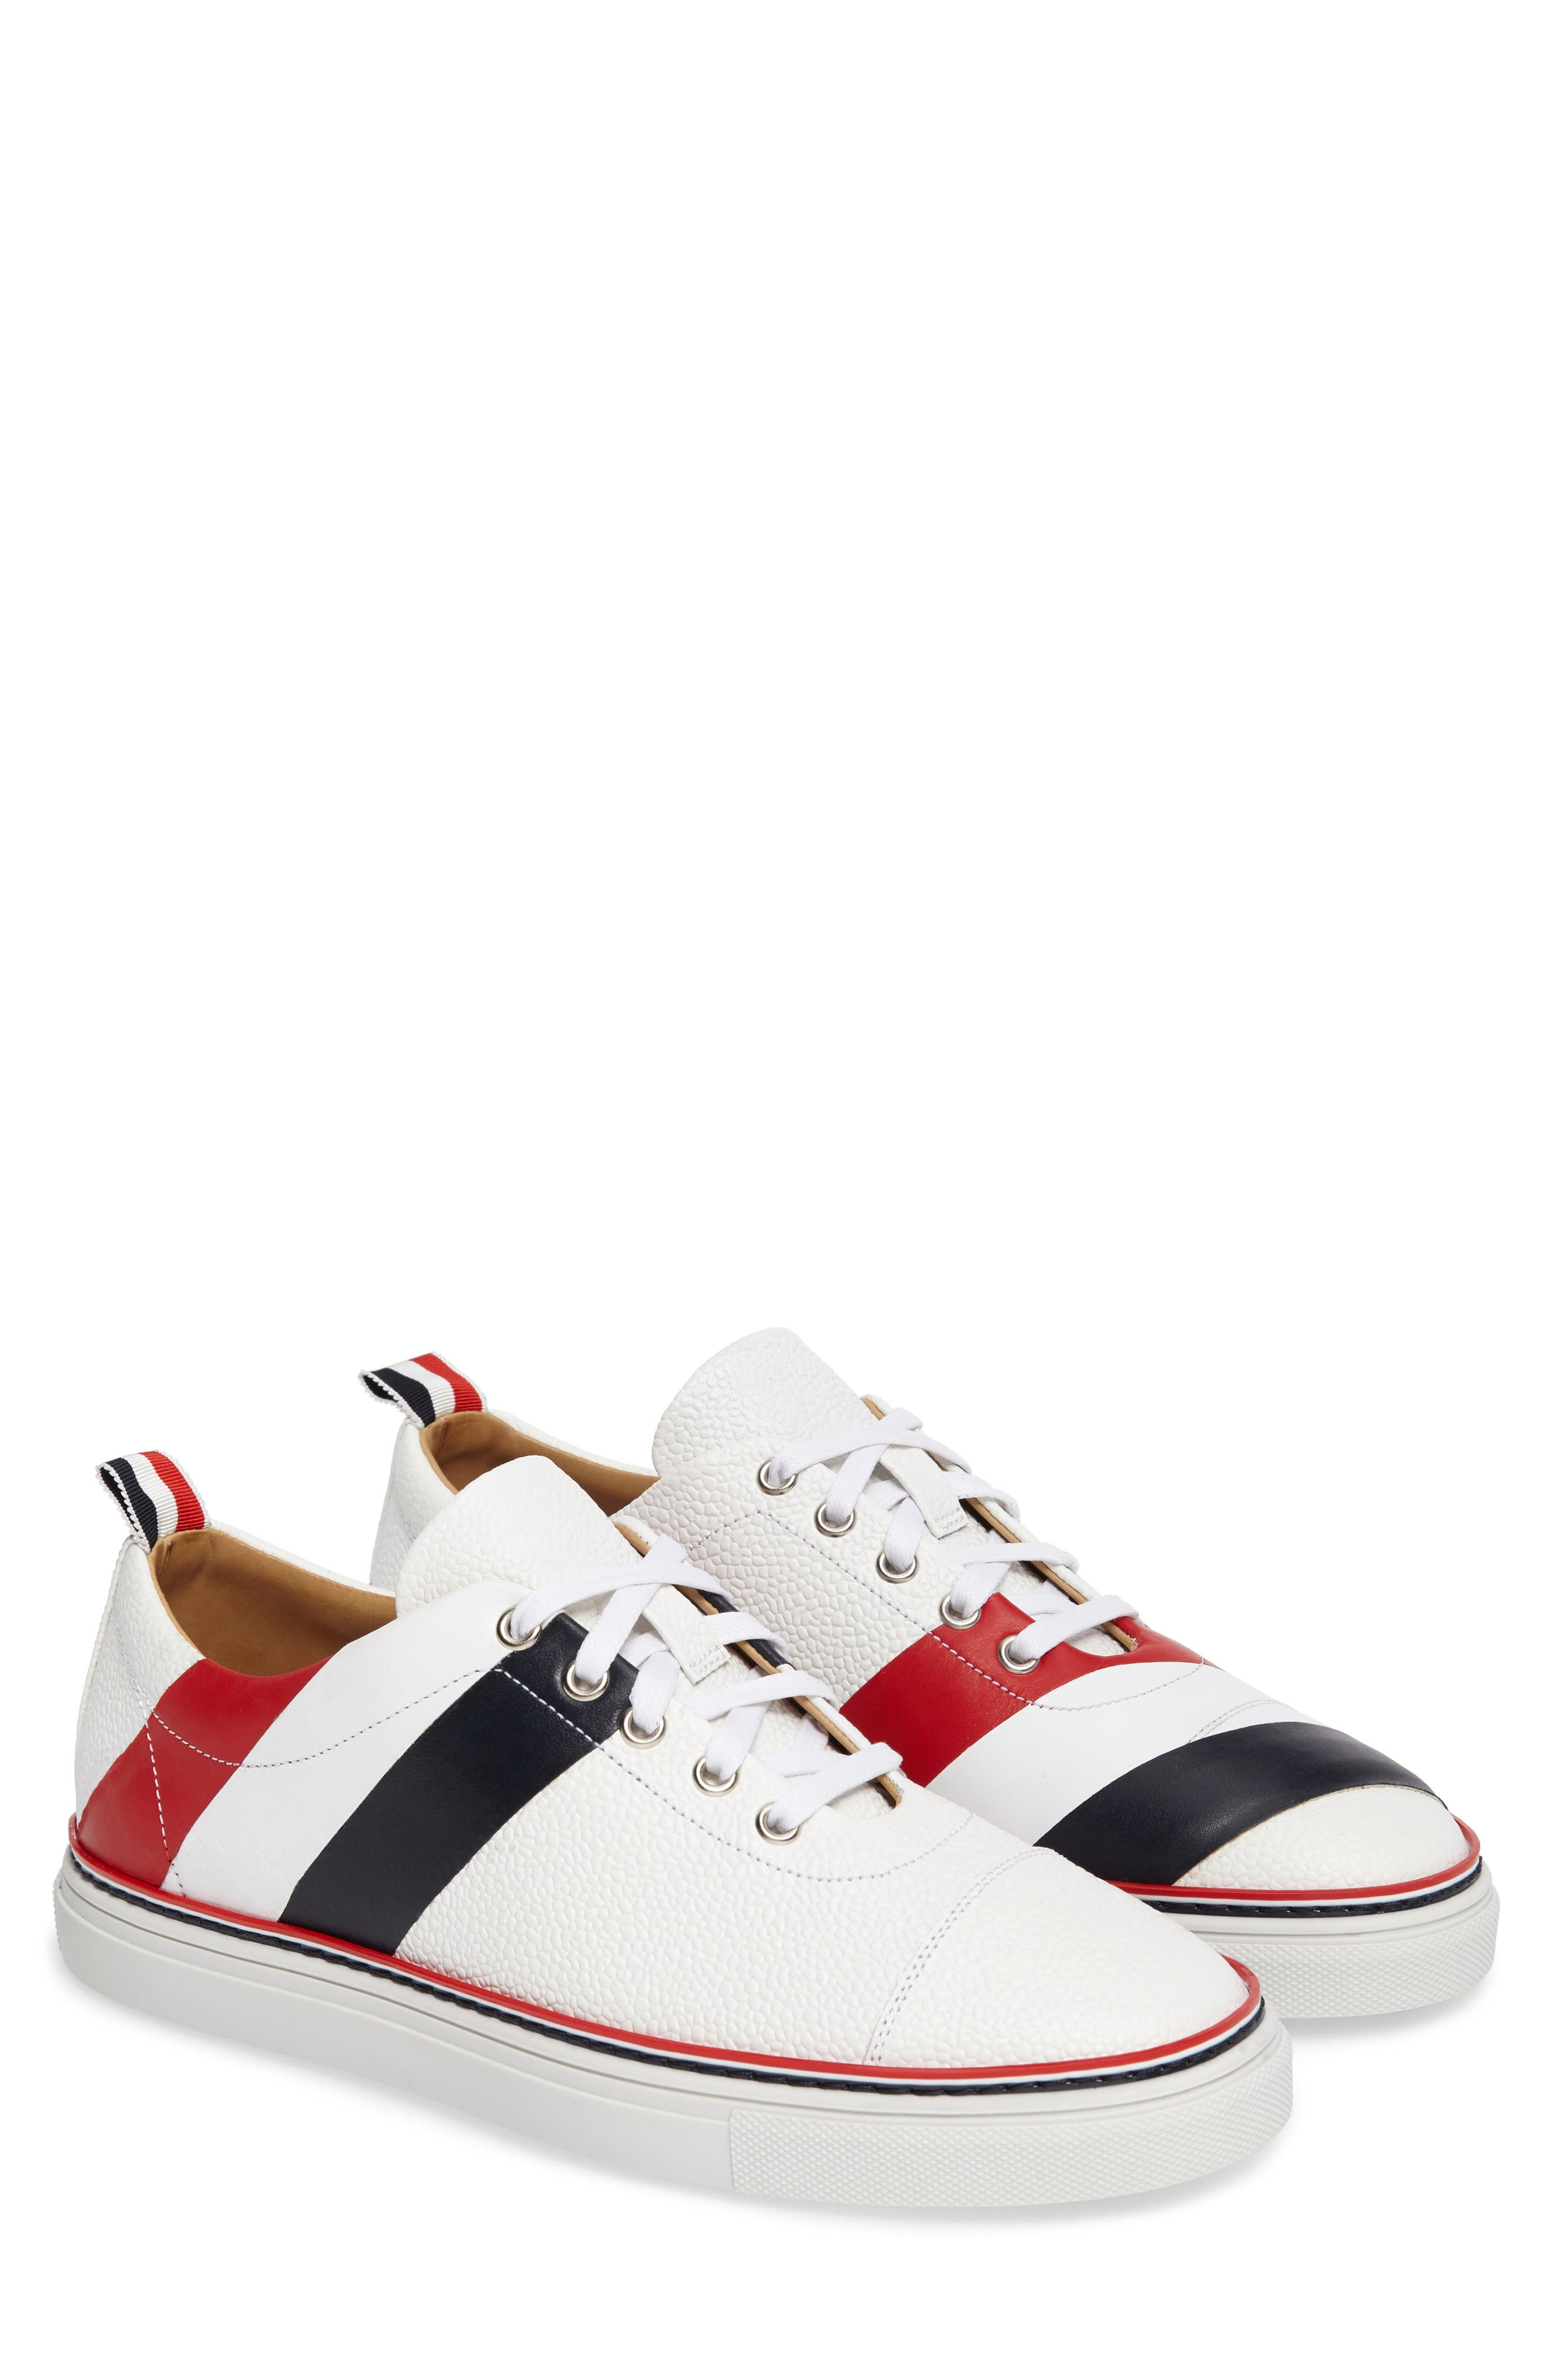 Asymmetrical Stripe Sneaker,                         Main,                         color, 100 White